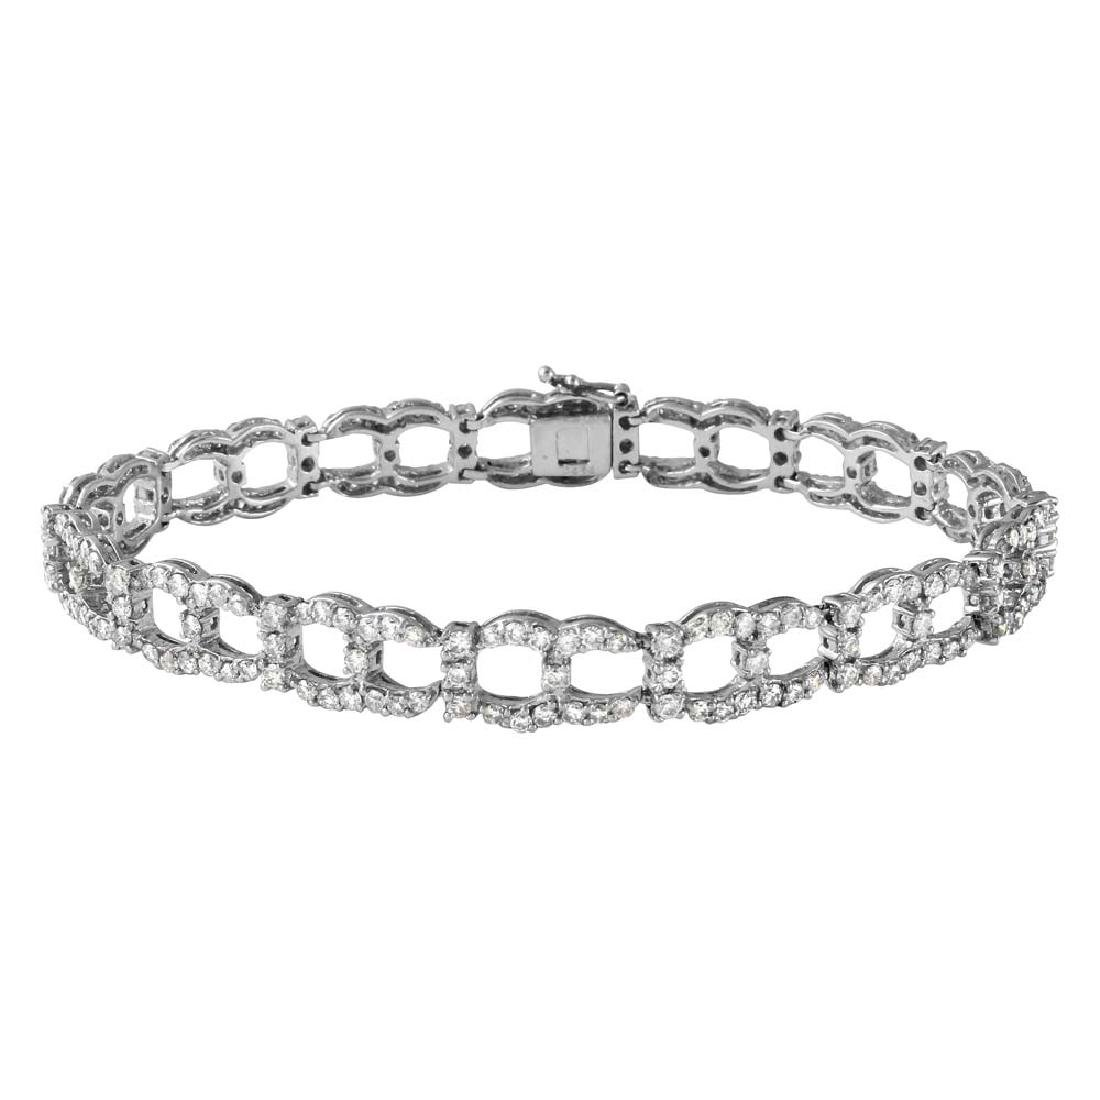 Genuine 4.54 TCW 14K White Gold Ladies Bracelet